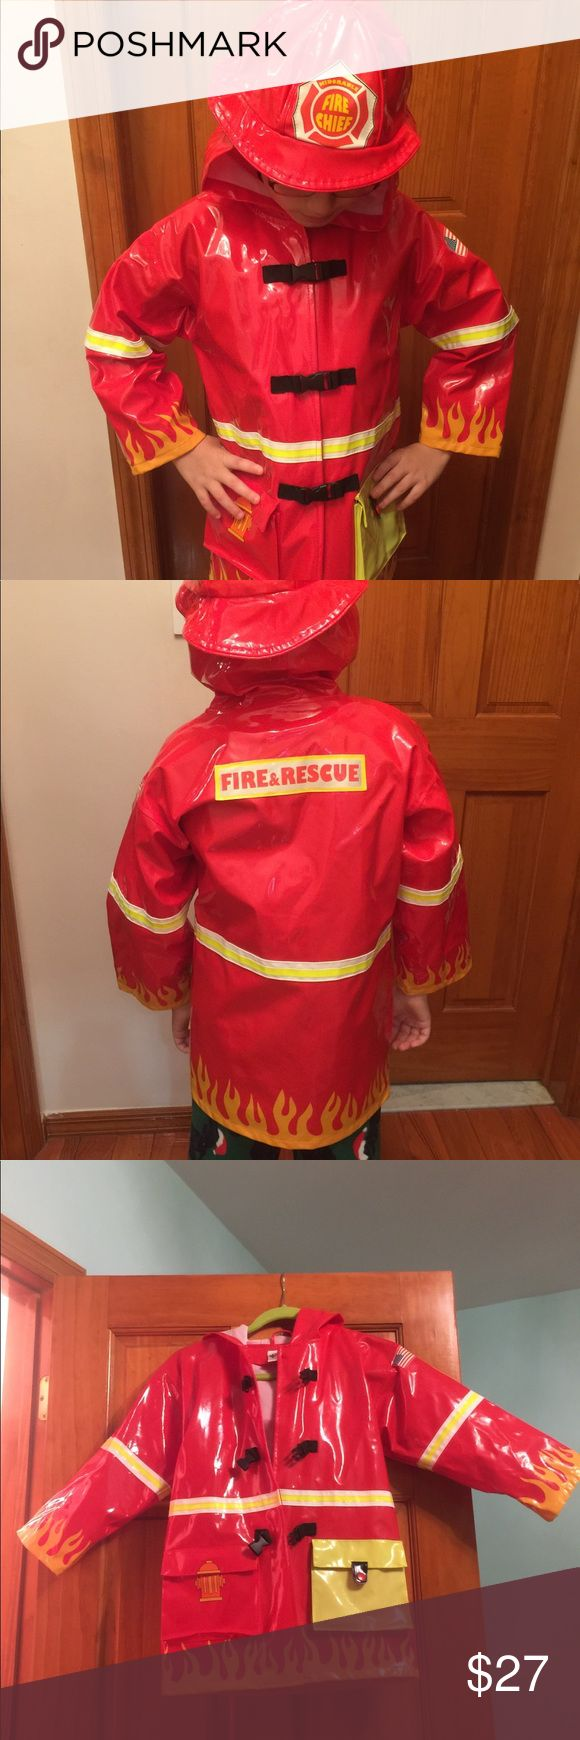 🎉Final Sale🎉Kidorable Fireman Raincoat Fireman Raincoat, little boys size 6/6x Rainy days have never looked better for him. This fire engine red jacket has authentic buckle closures and easy snap and pockets with Velcro® closure.      Shell: polyurethane; Lining: nylon     Hand wash     Imported  Excellent Condition! Like New! Kidorable Jackets & Coats Raincoats